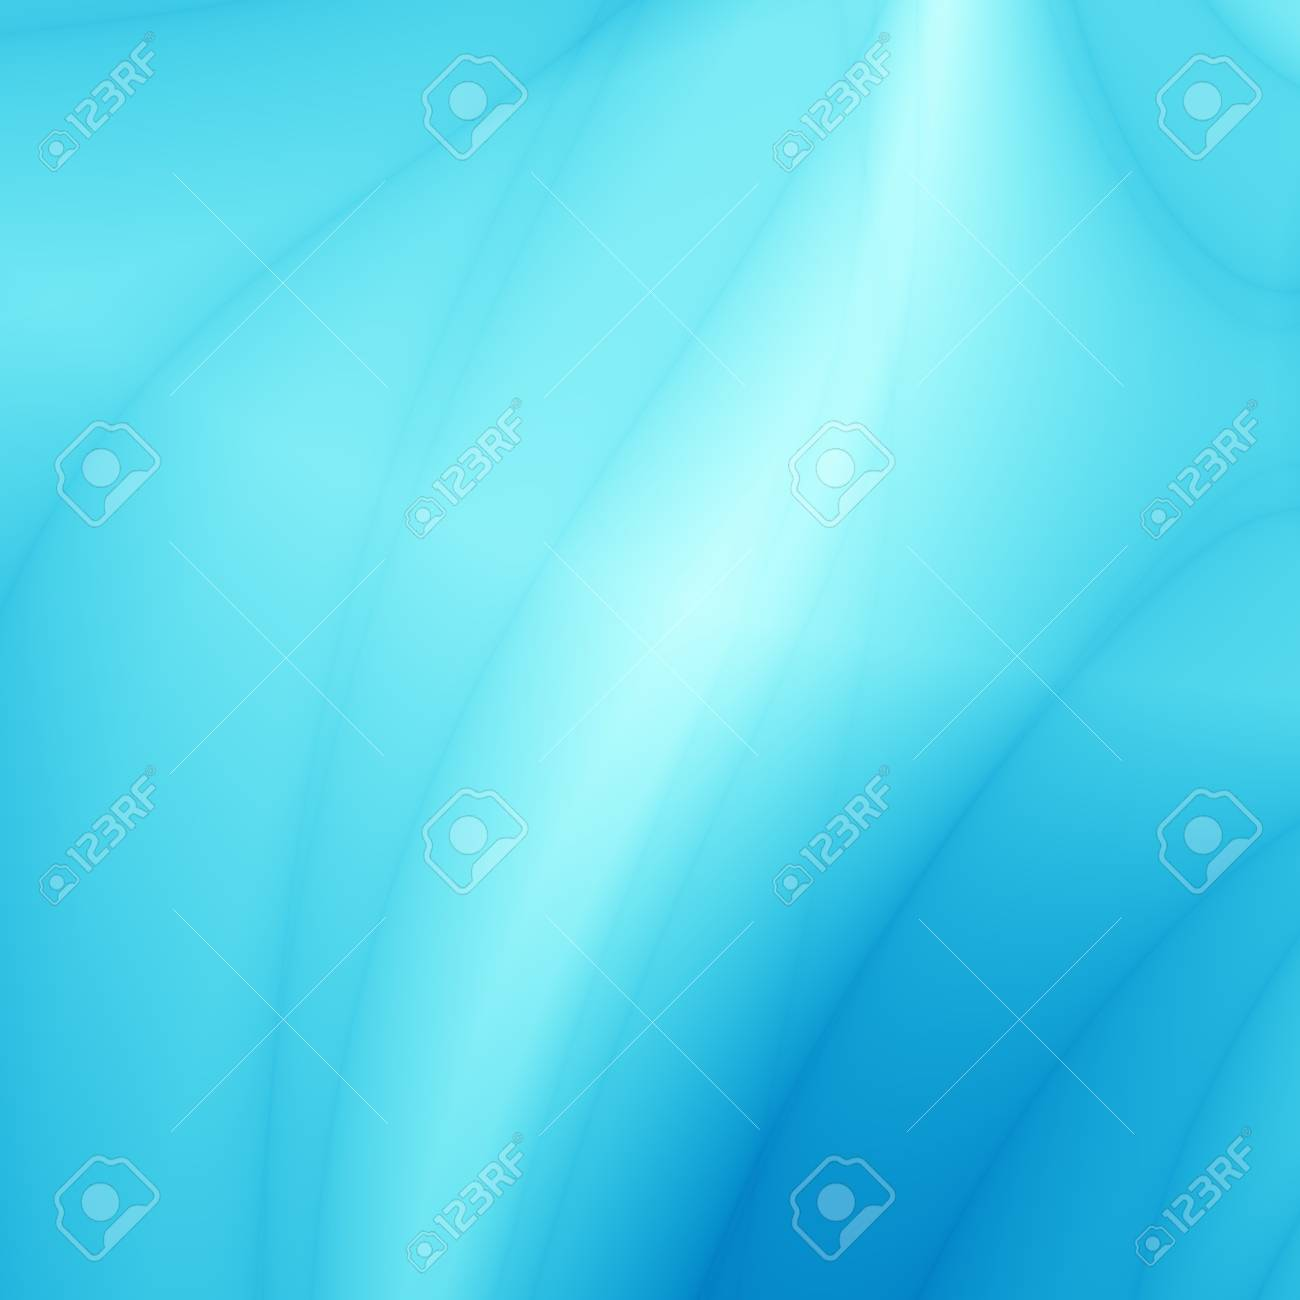 Turquoise Blue Wavy Abstract Wallpaper Unusual Background